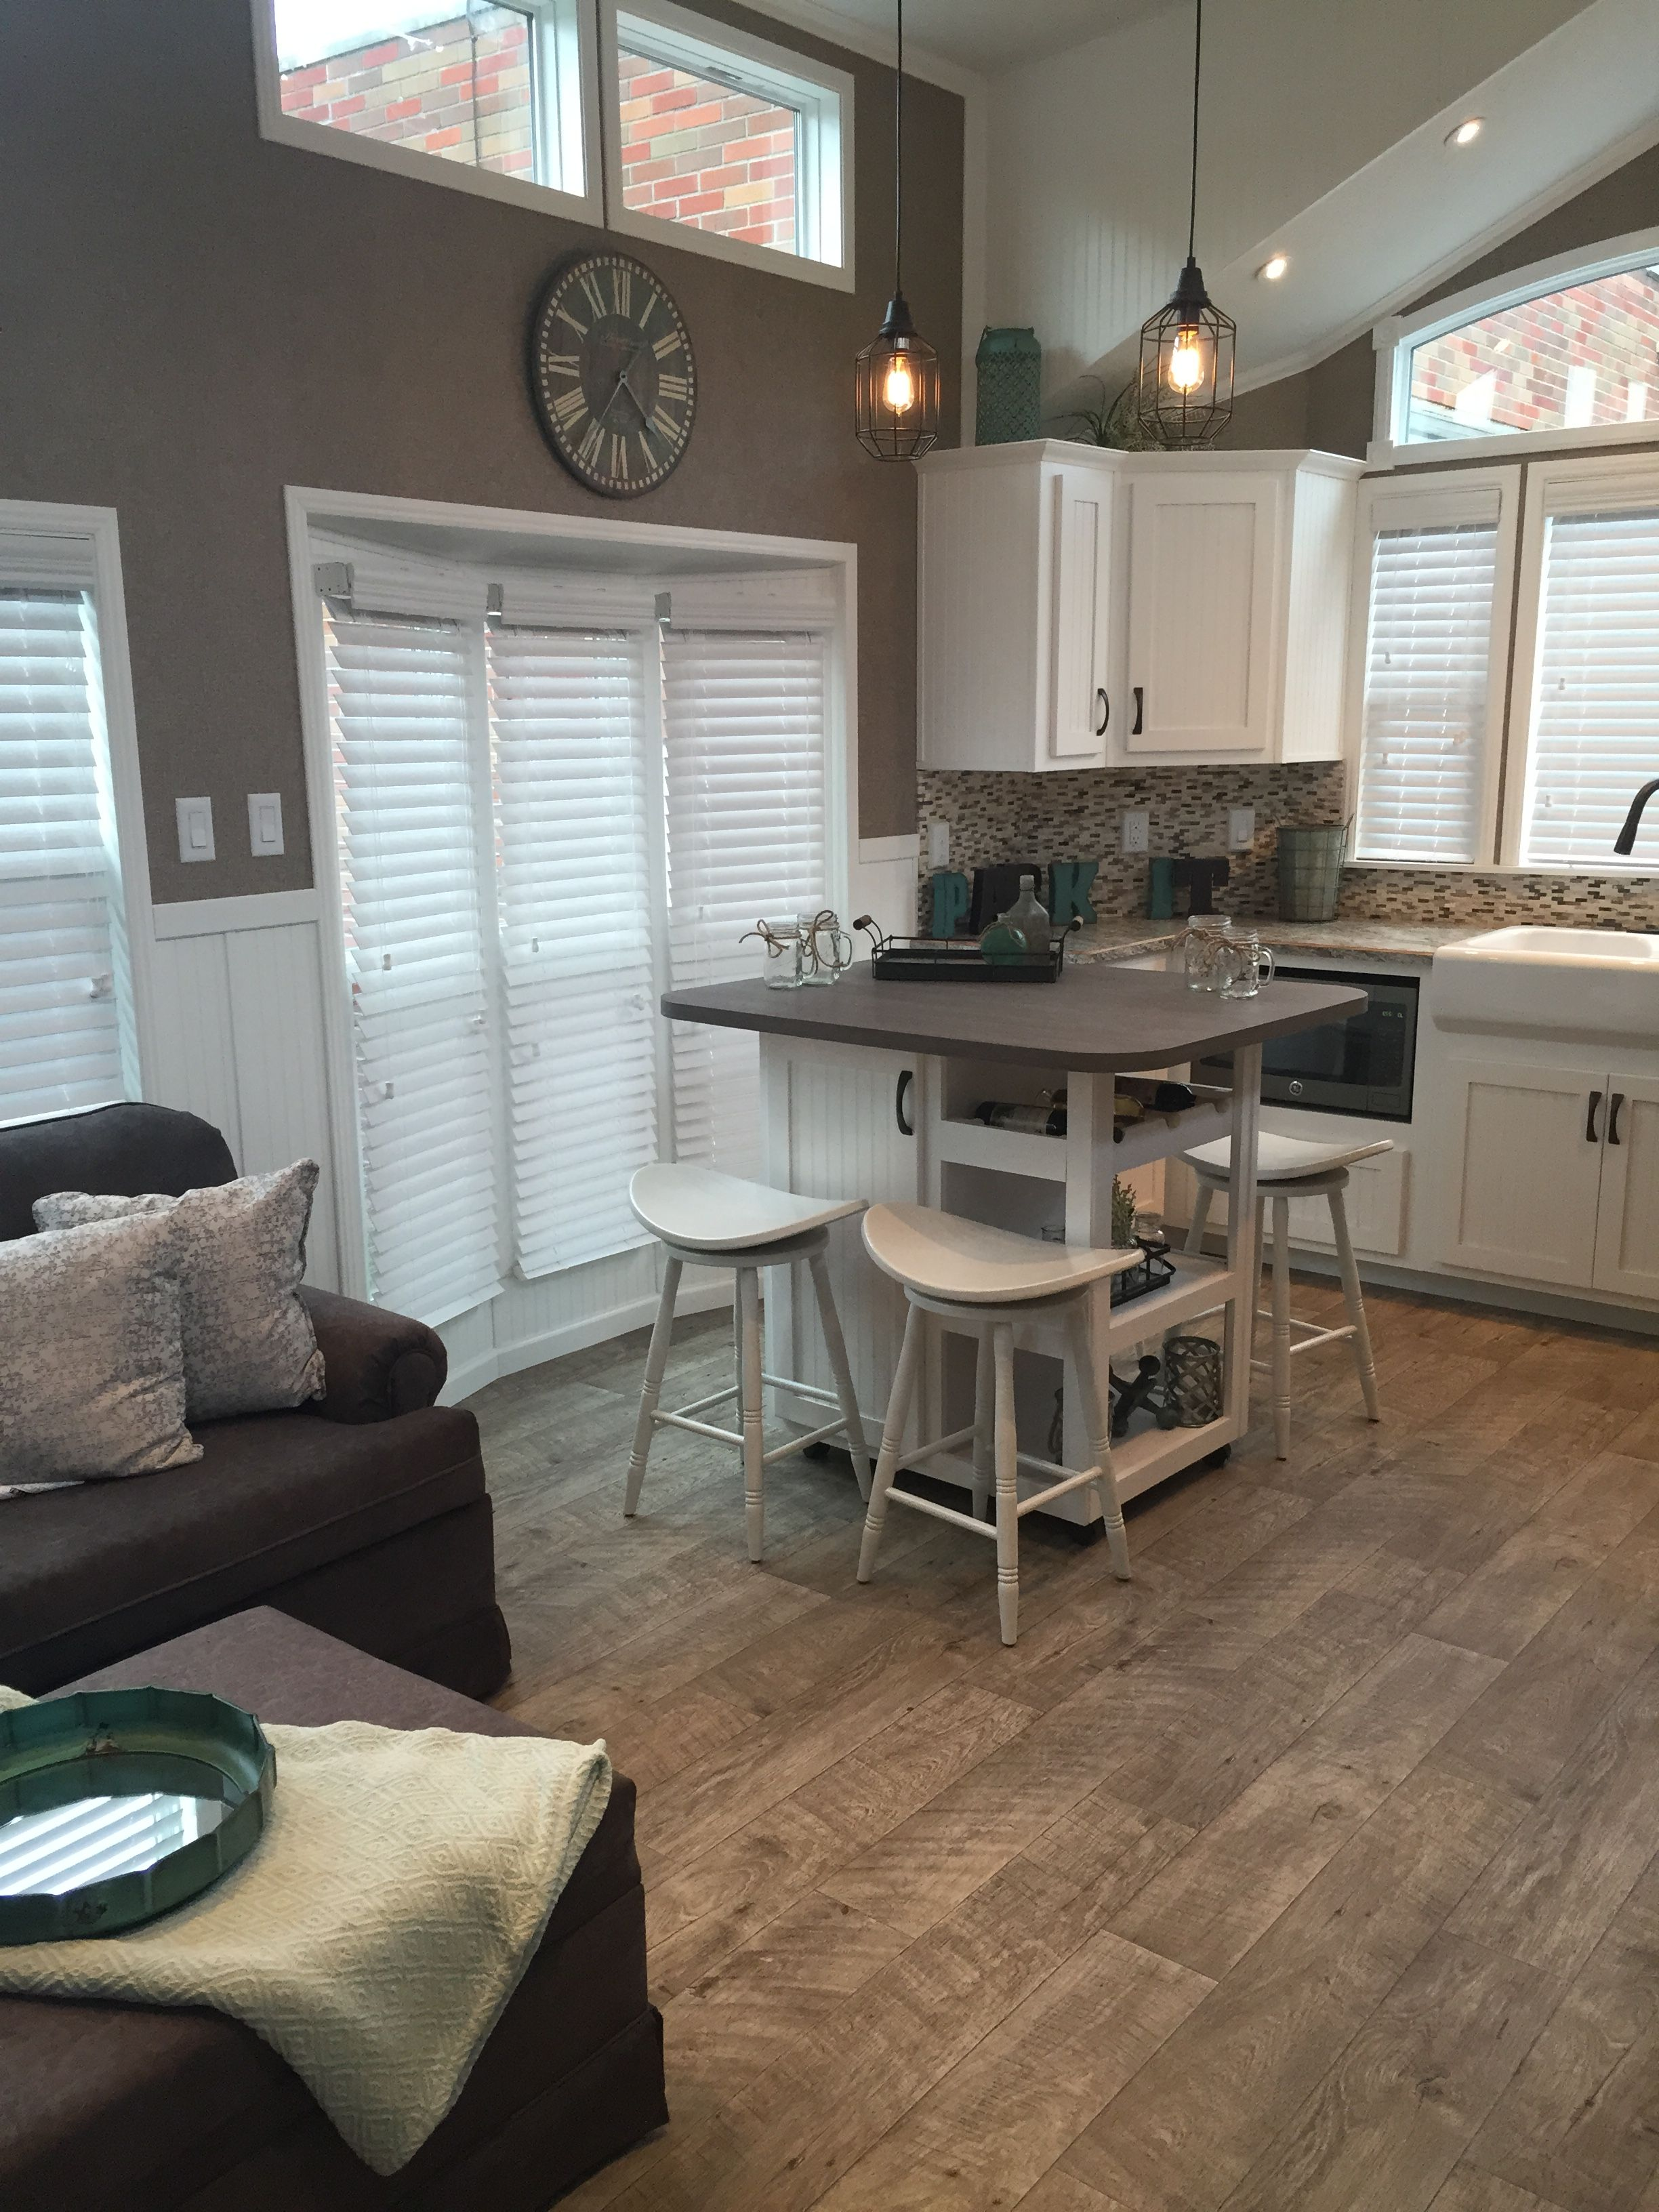 Model Homes Images Interior Kropf Island Cottage Park Model My Obsession Tiny